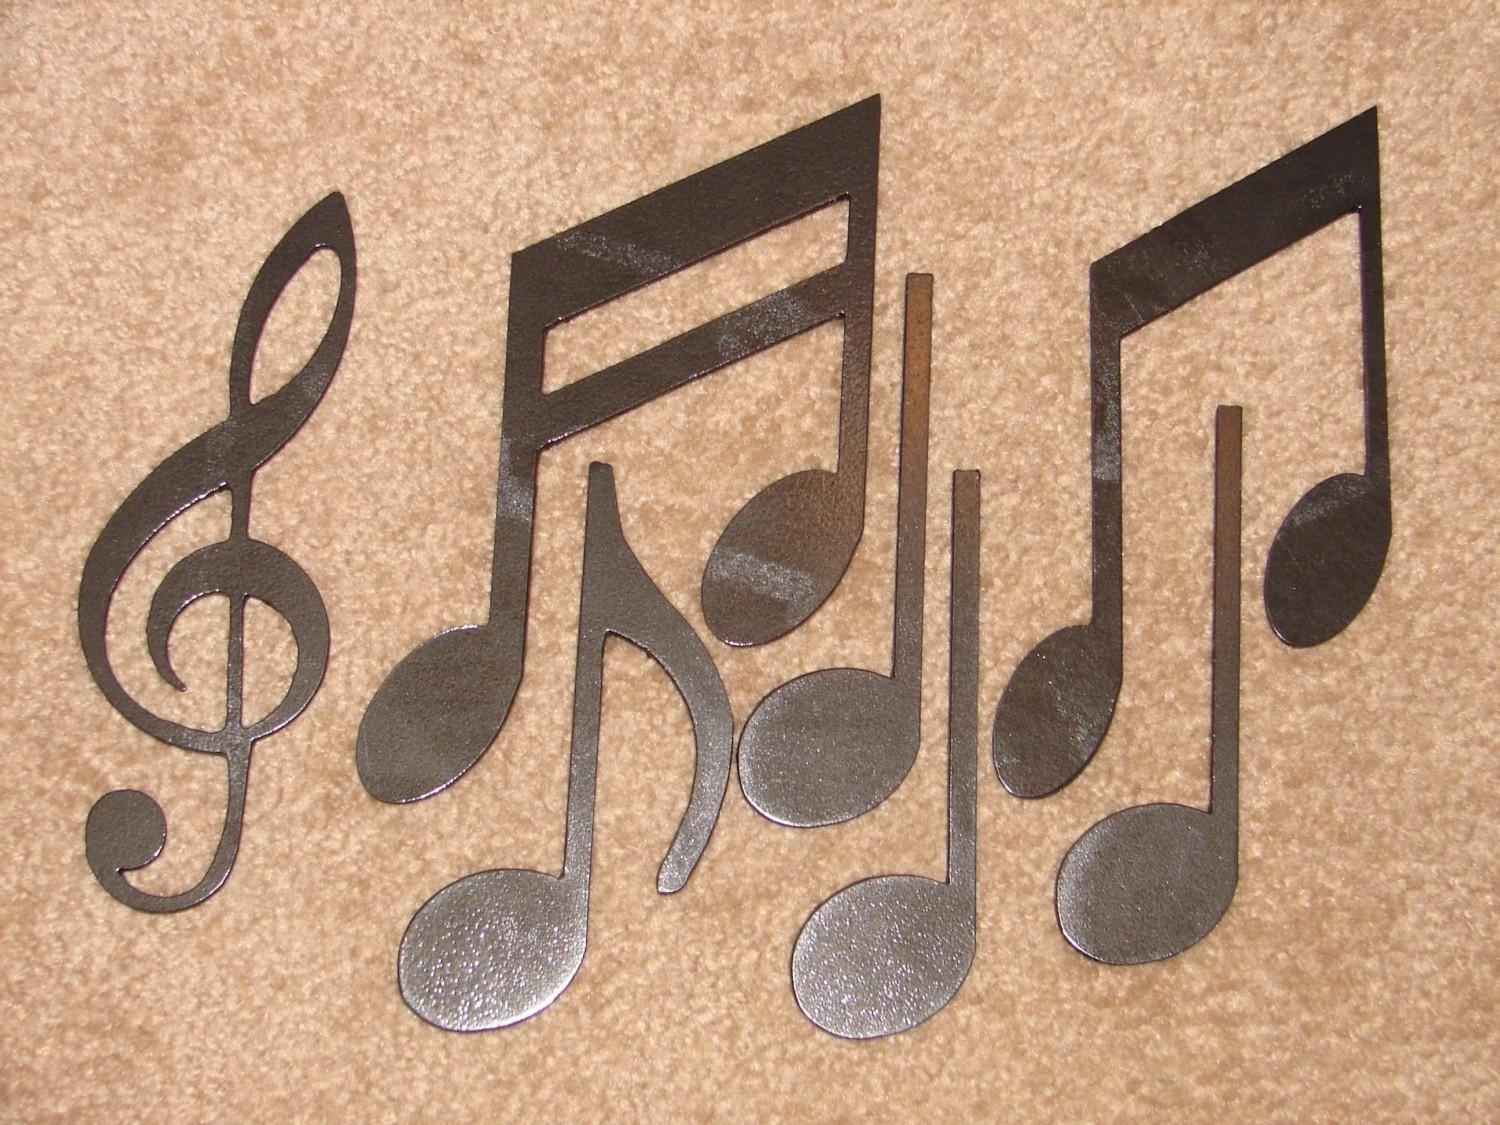 Metal Wall Art Decor Music Notes Musical Note Patio Within Music Note Art For Walls (View 14 of 20)